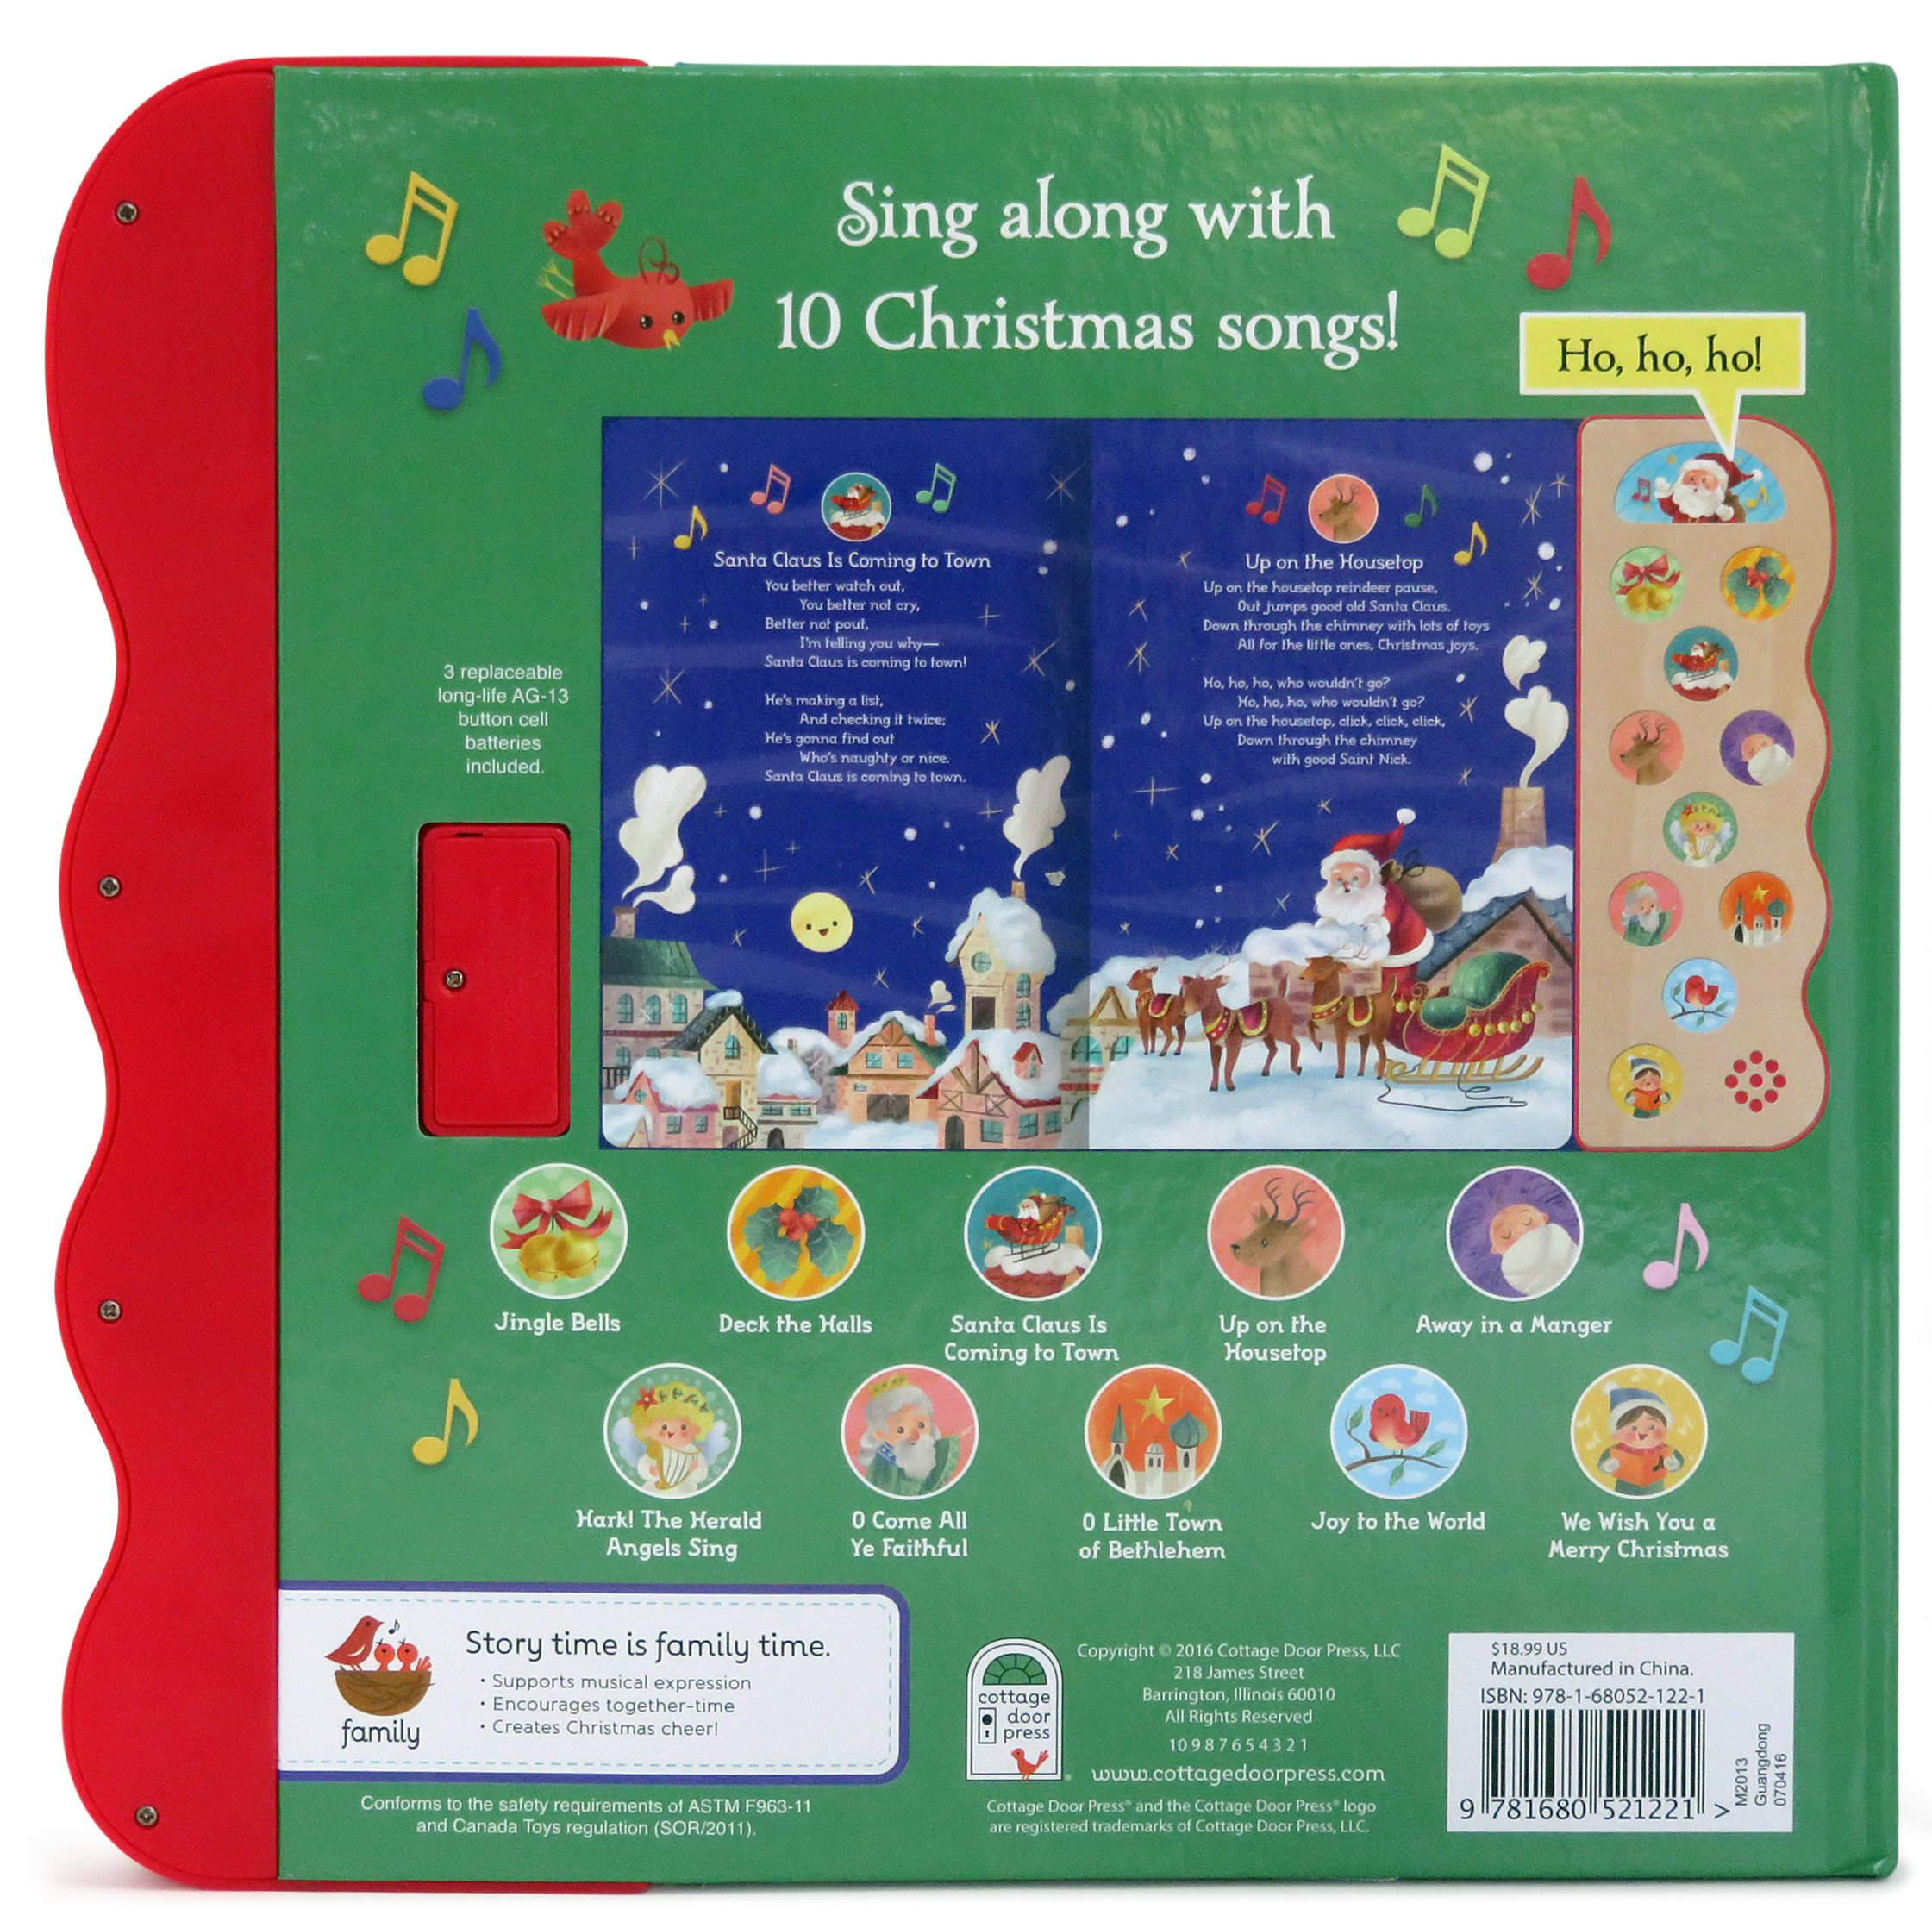 amazoncom christmas songs interactive childrens sound book 10 button sound 9781680521221 holly berry byrd cottage door press katya longhi books